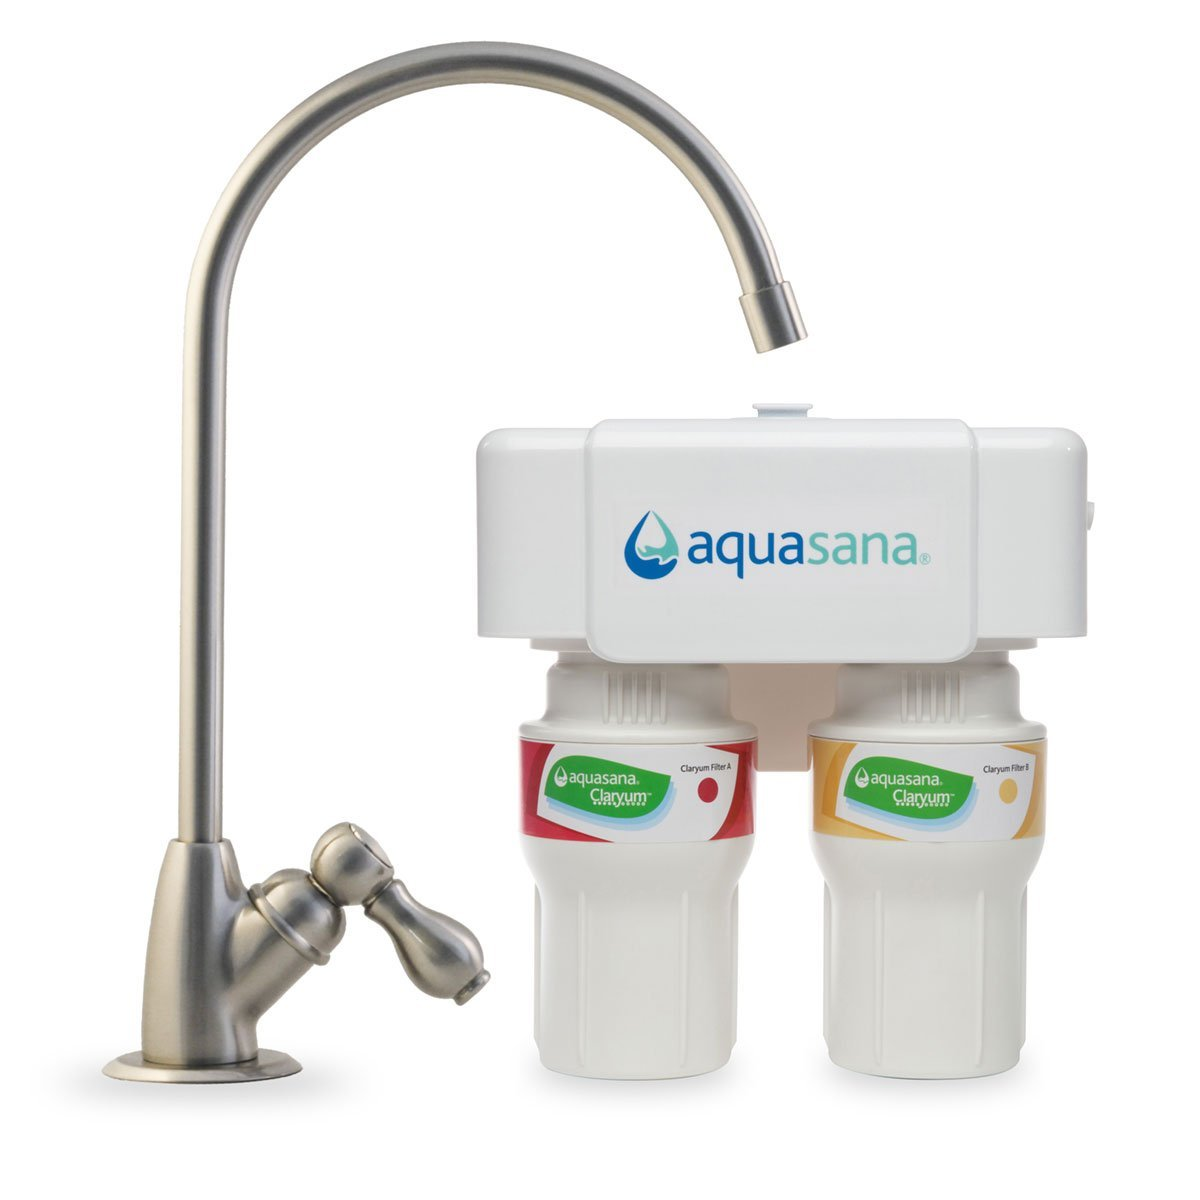 The Aquasana AQ 5200.55 2 Stage Under Sink Filter System